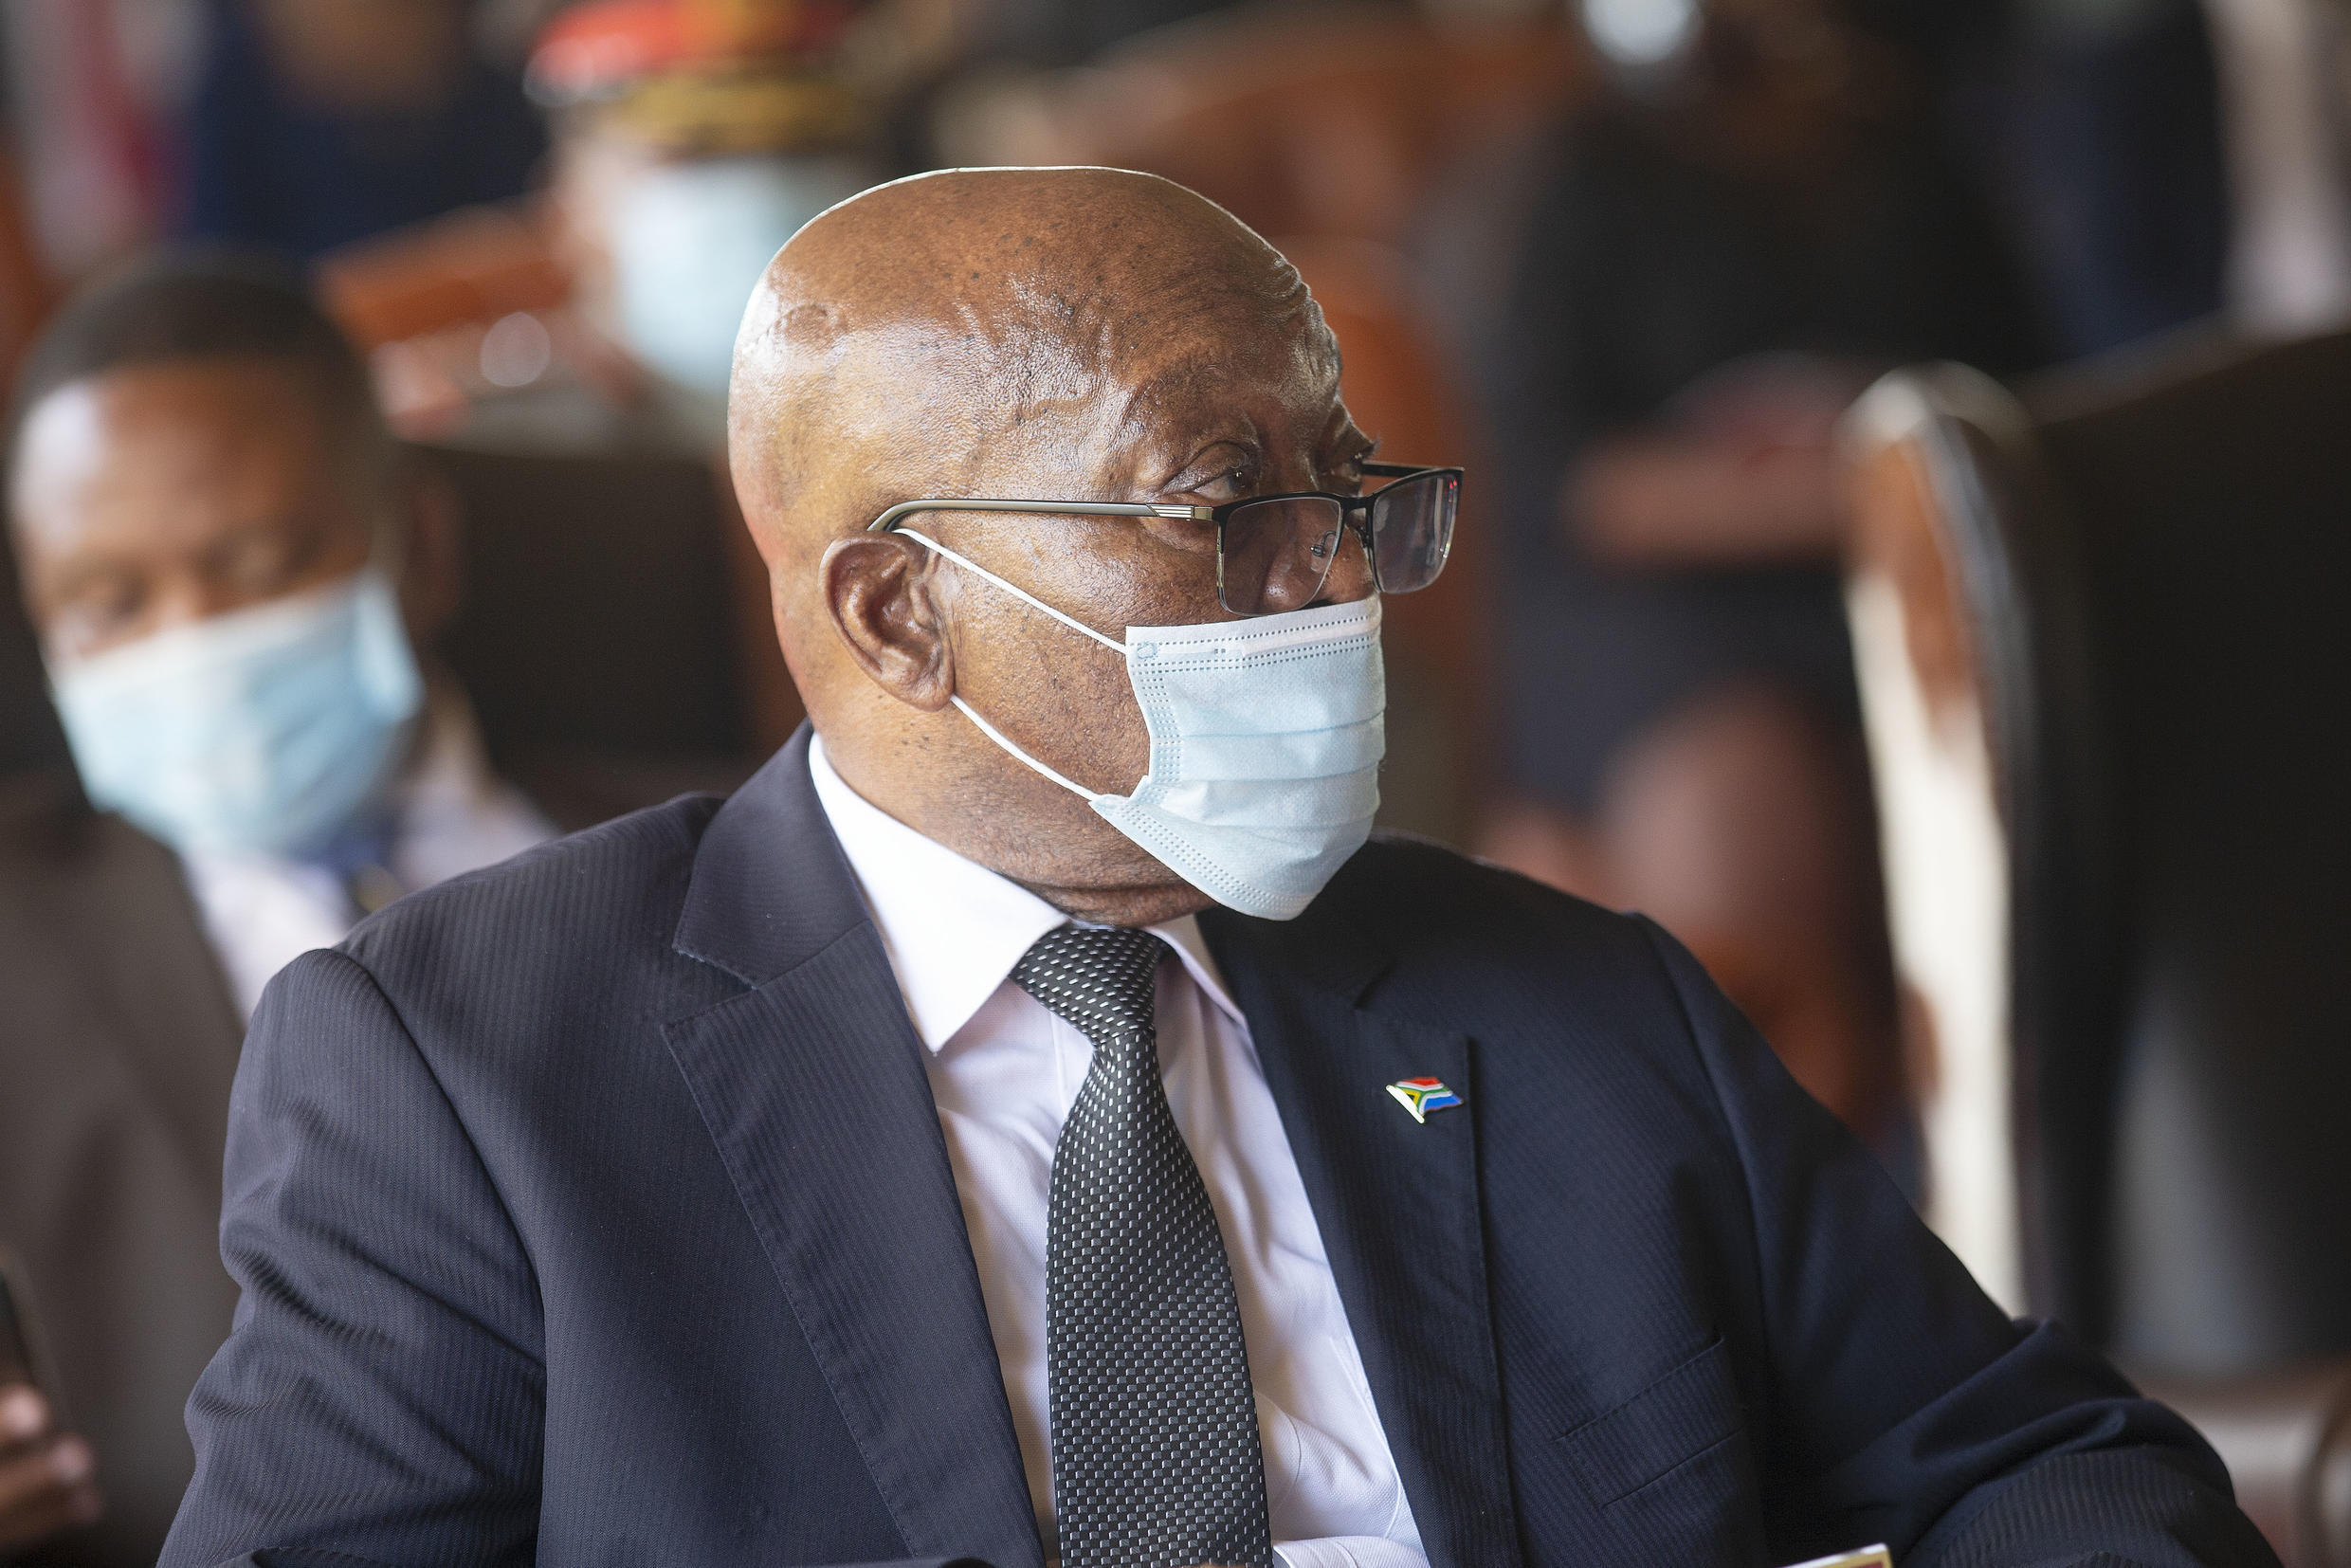 At least 34 witnesses have directly or indirectly implicated former president Jacob Zuma, who has denied any wrongdoing